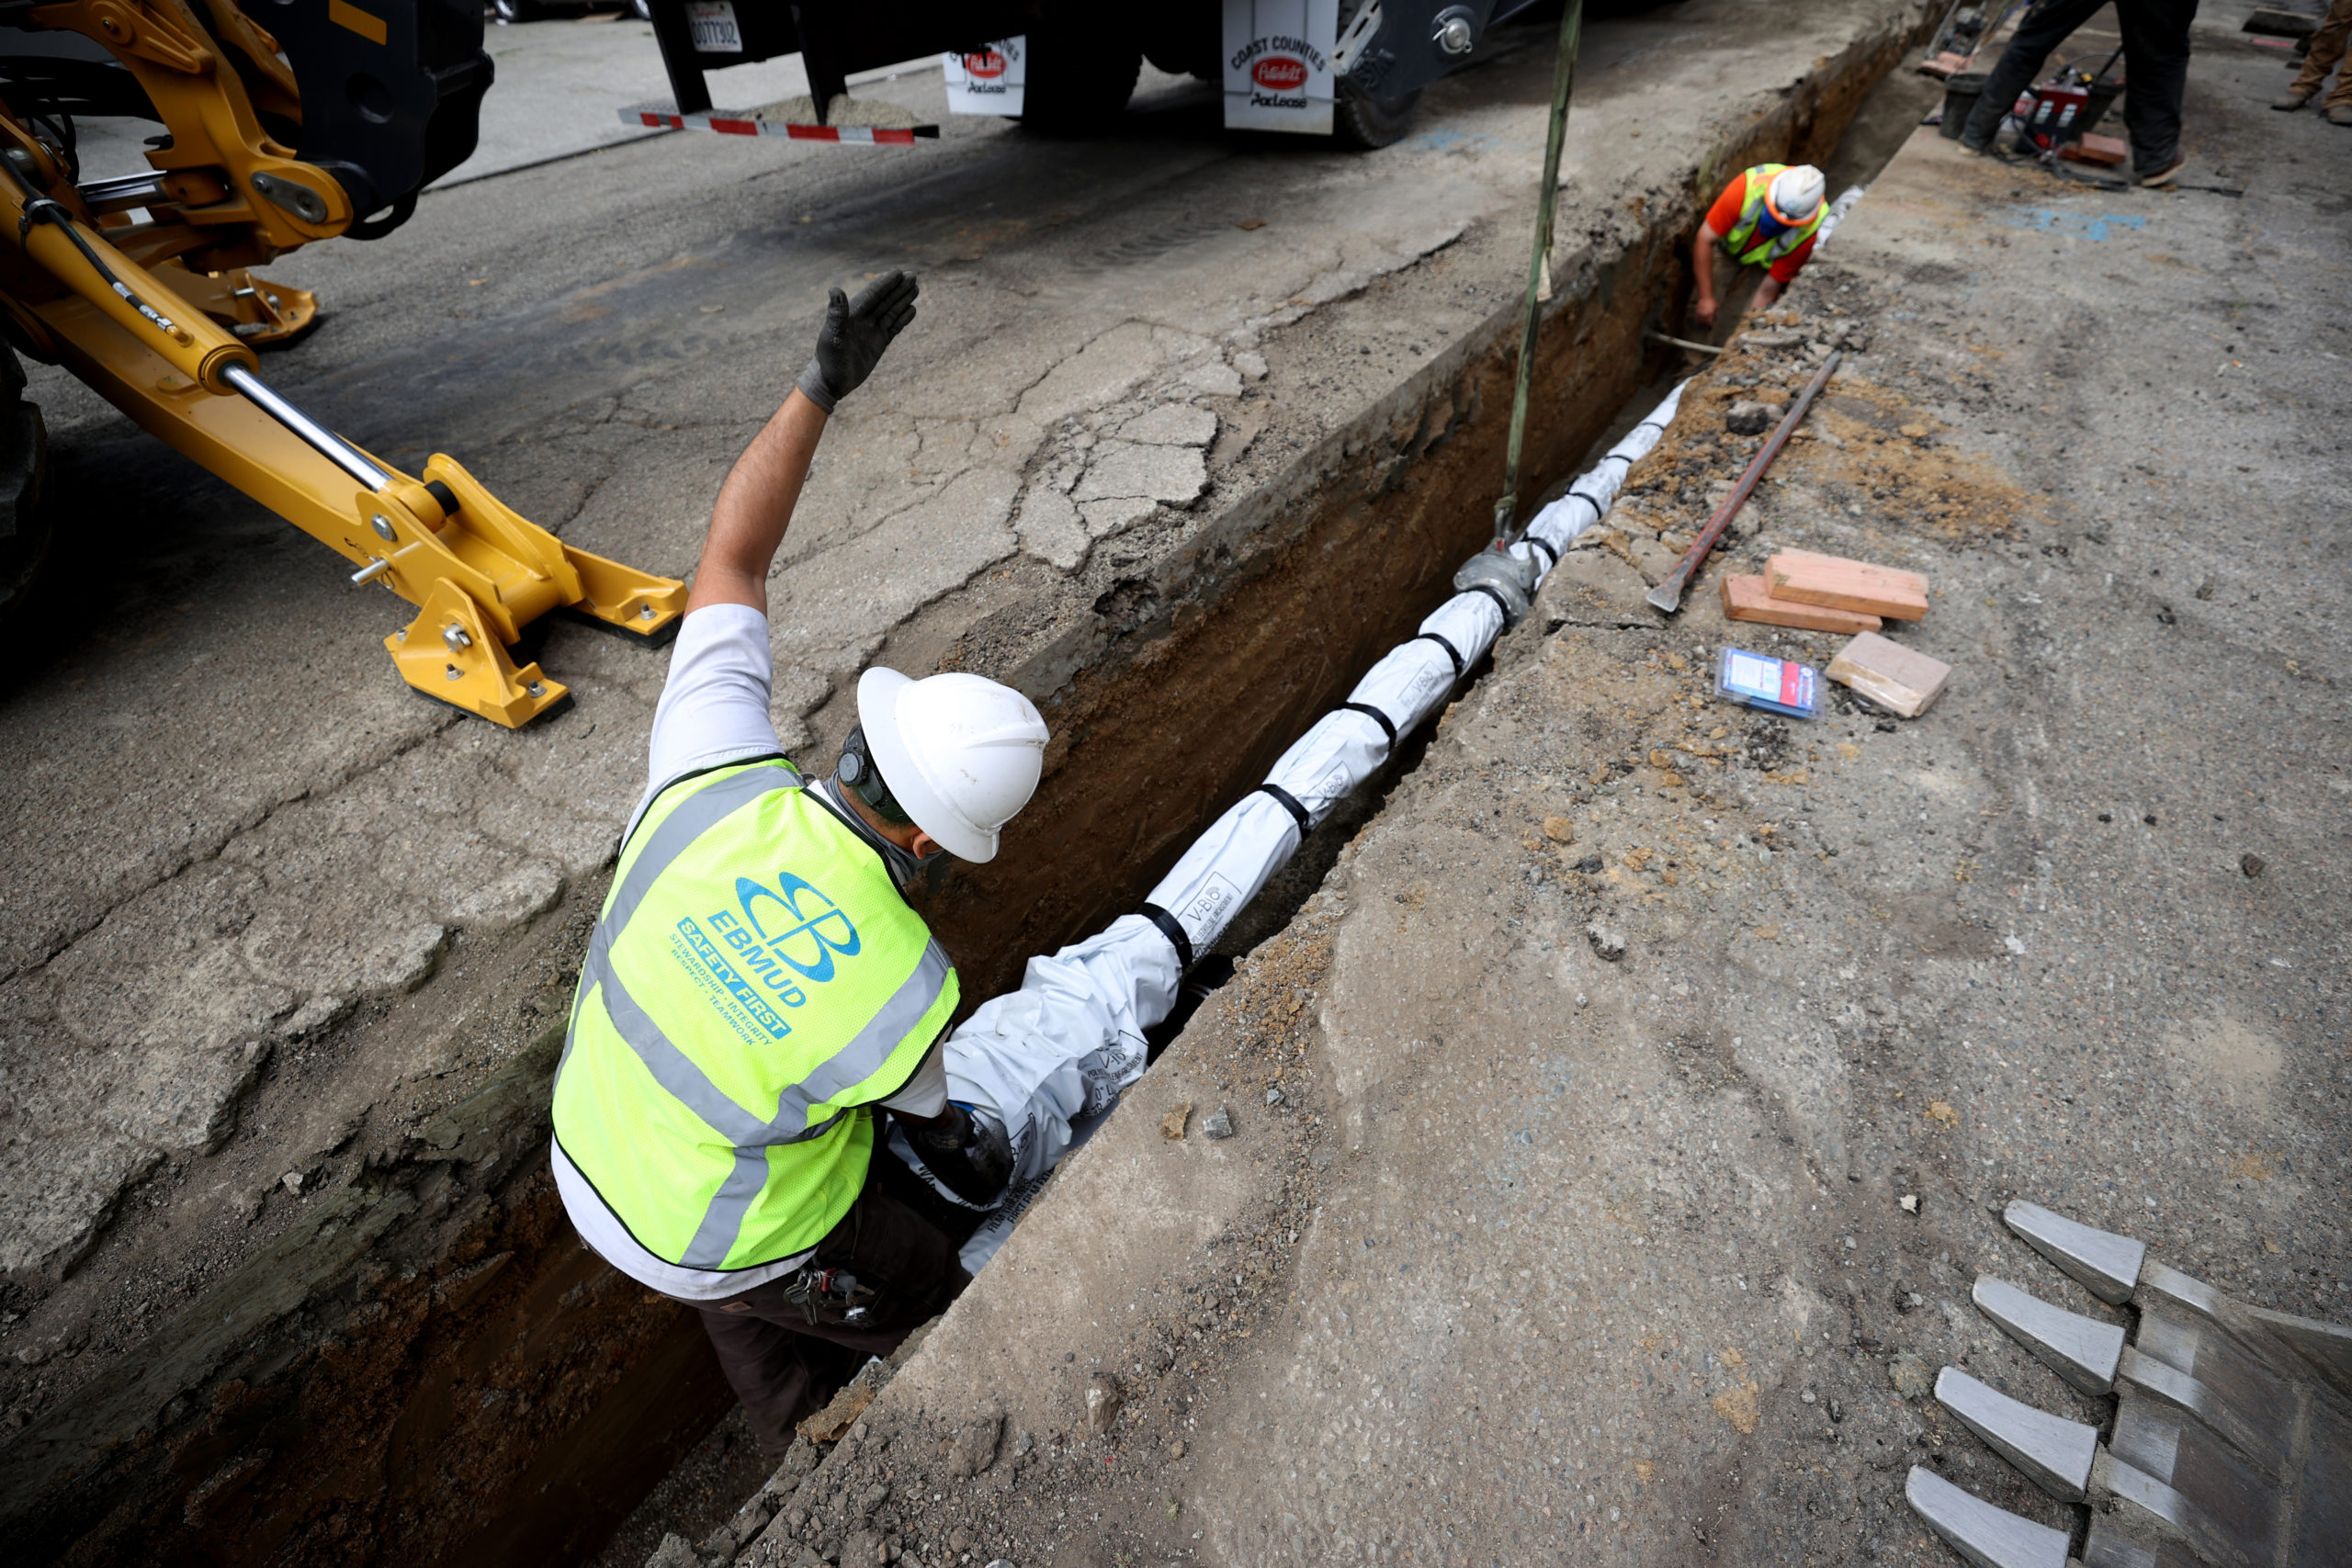 Workers install a new water pipeline on April 22 in Oakland, California. (Justin Sullivan/Getty Images)